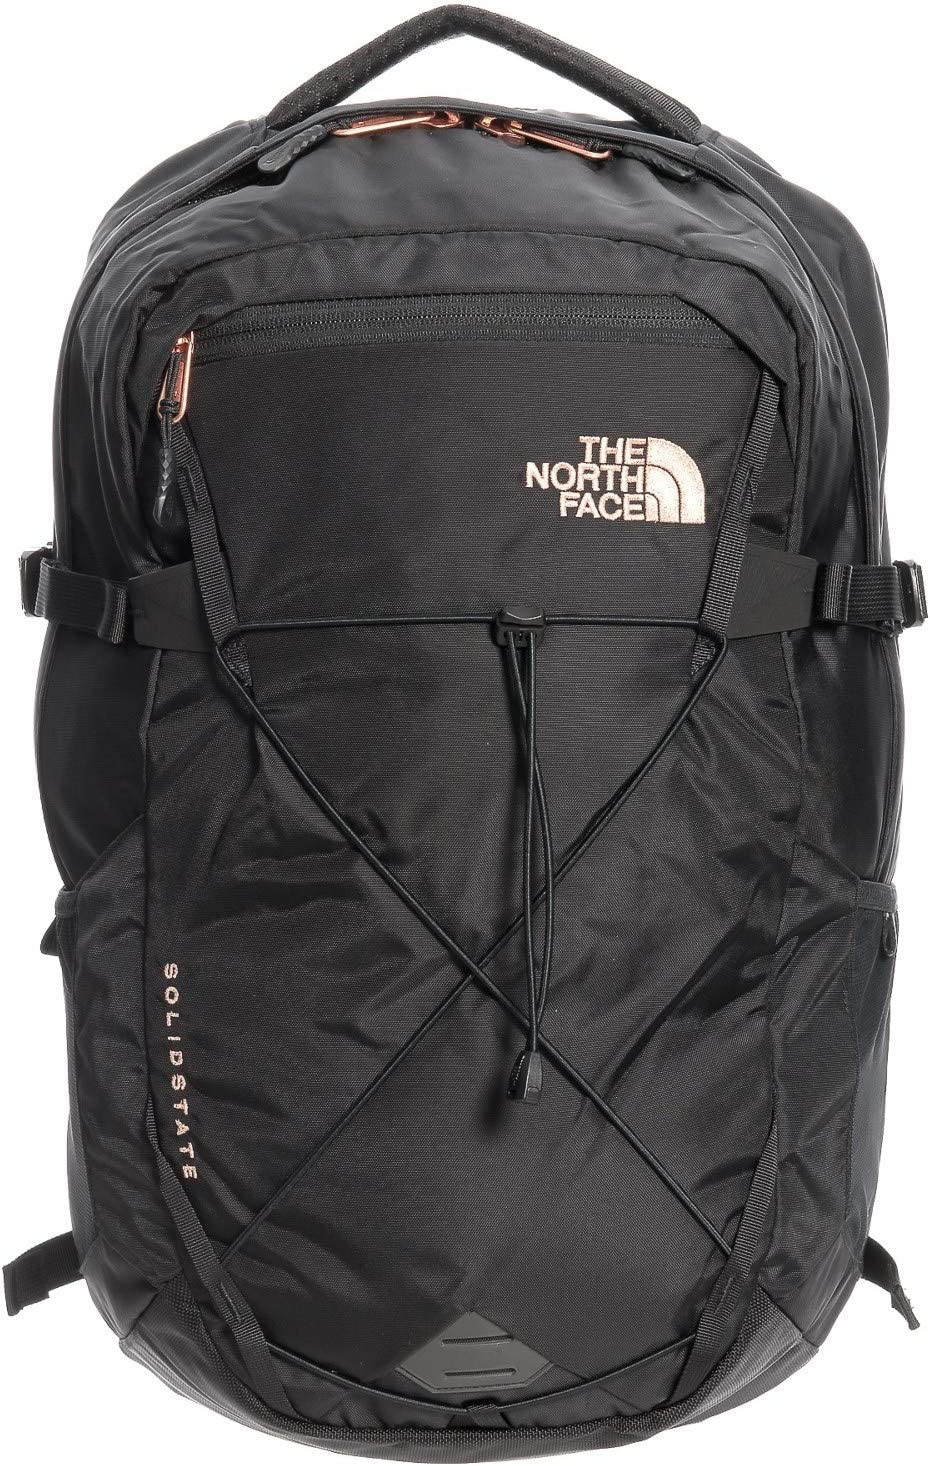 Amazon.com: The North Face Women's Solid State Laptop Backpack, Black/Rose  Gold: Computers & Accessories